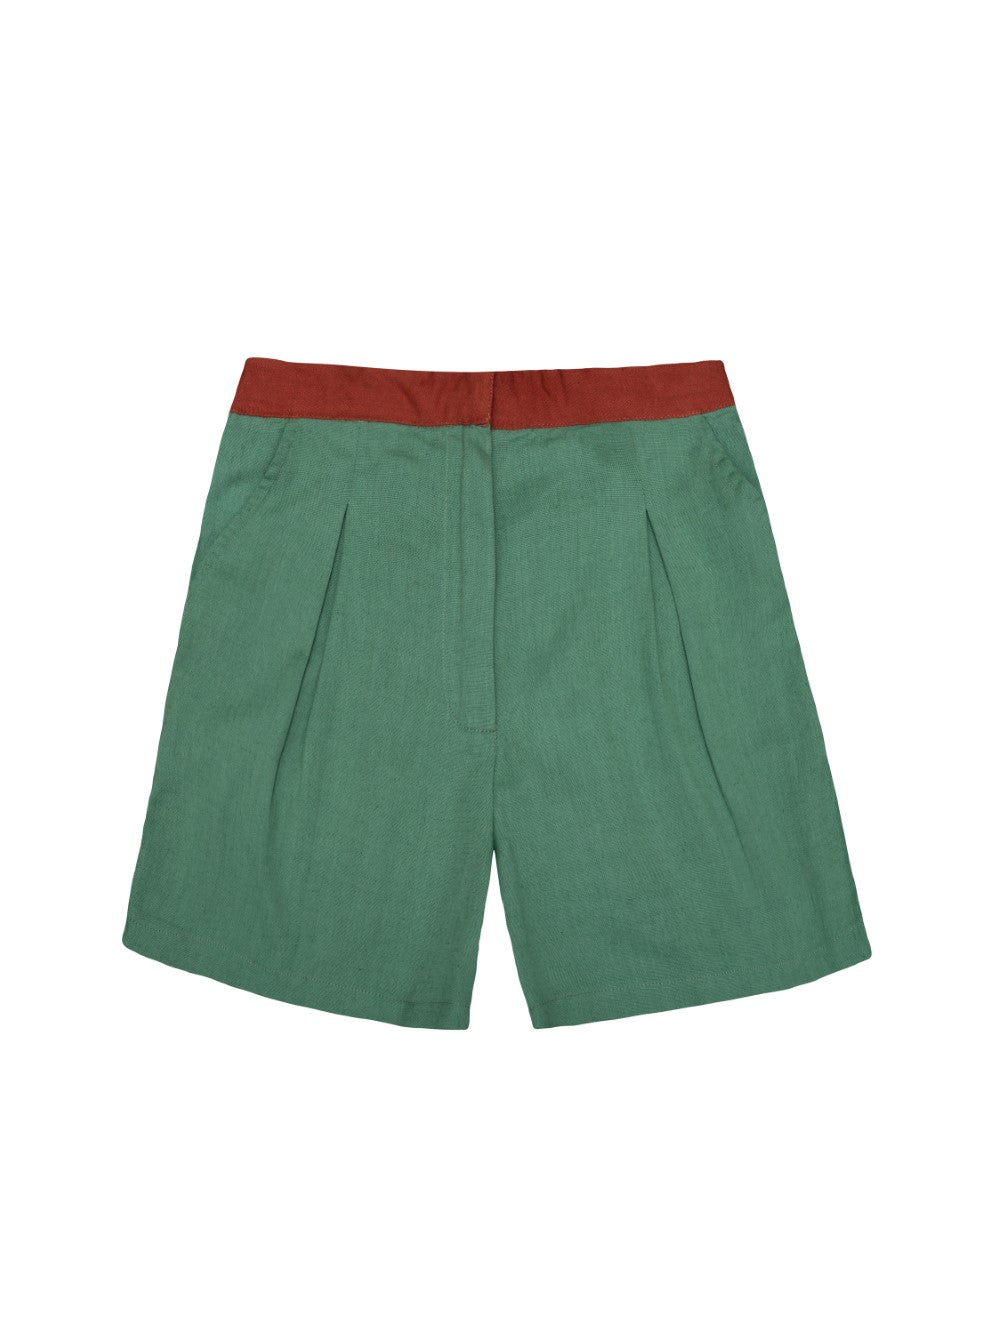 Green and Rust Shorts